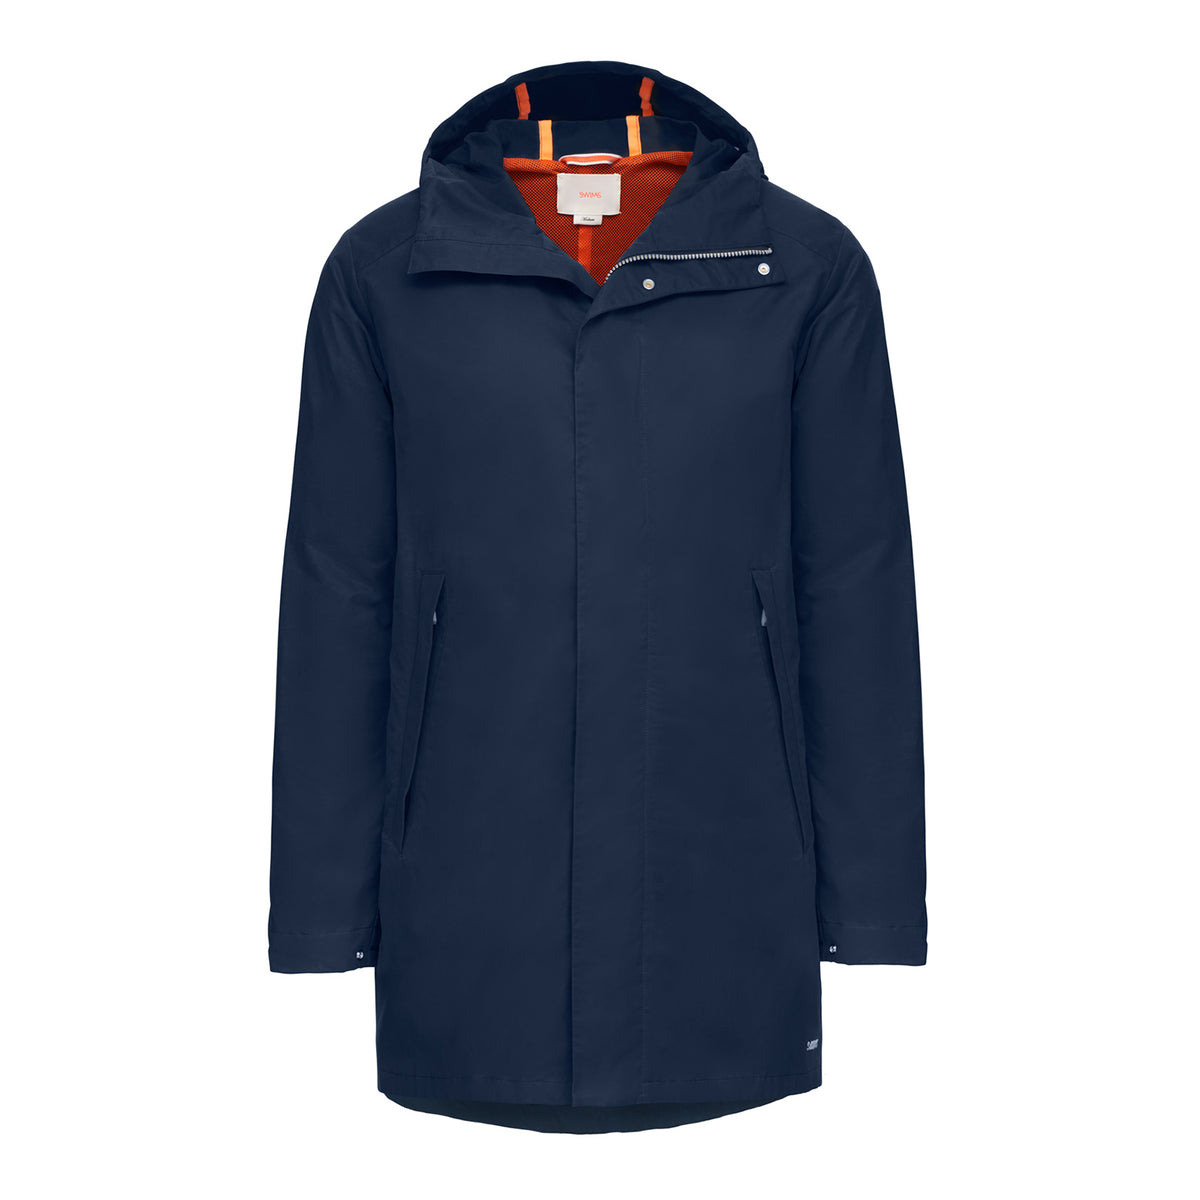 Motion Parkas - background::white,variant::Navy